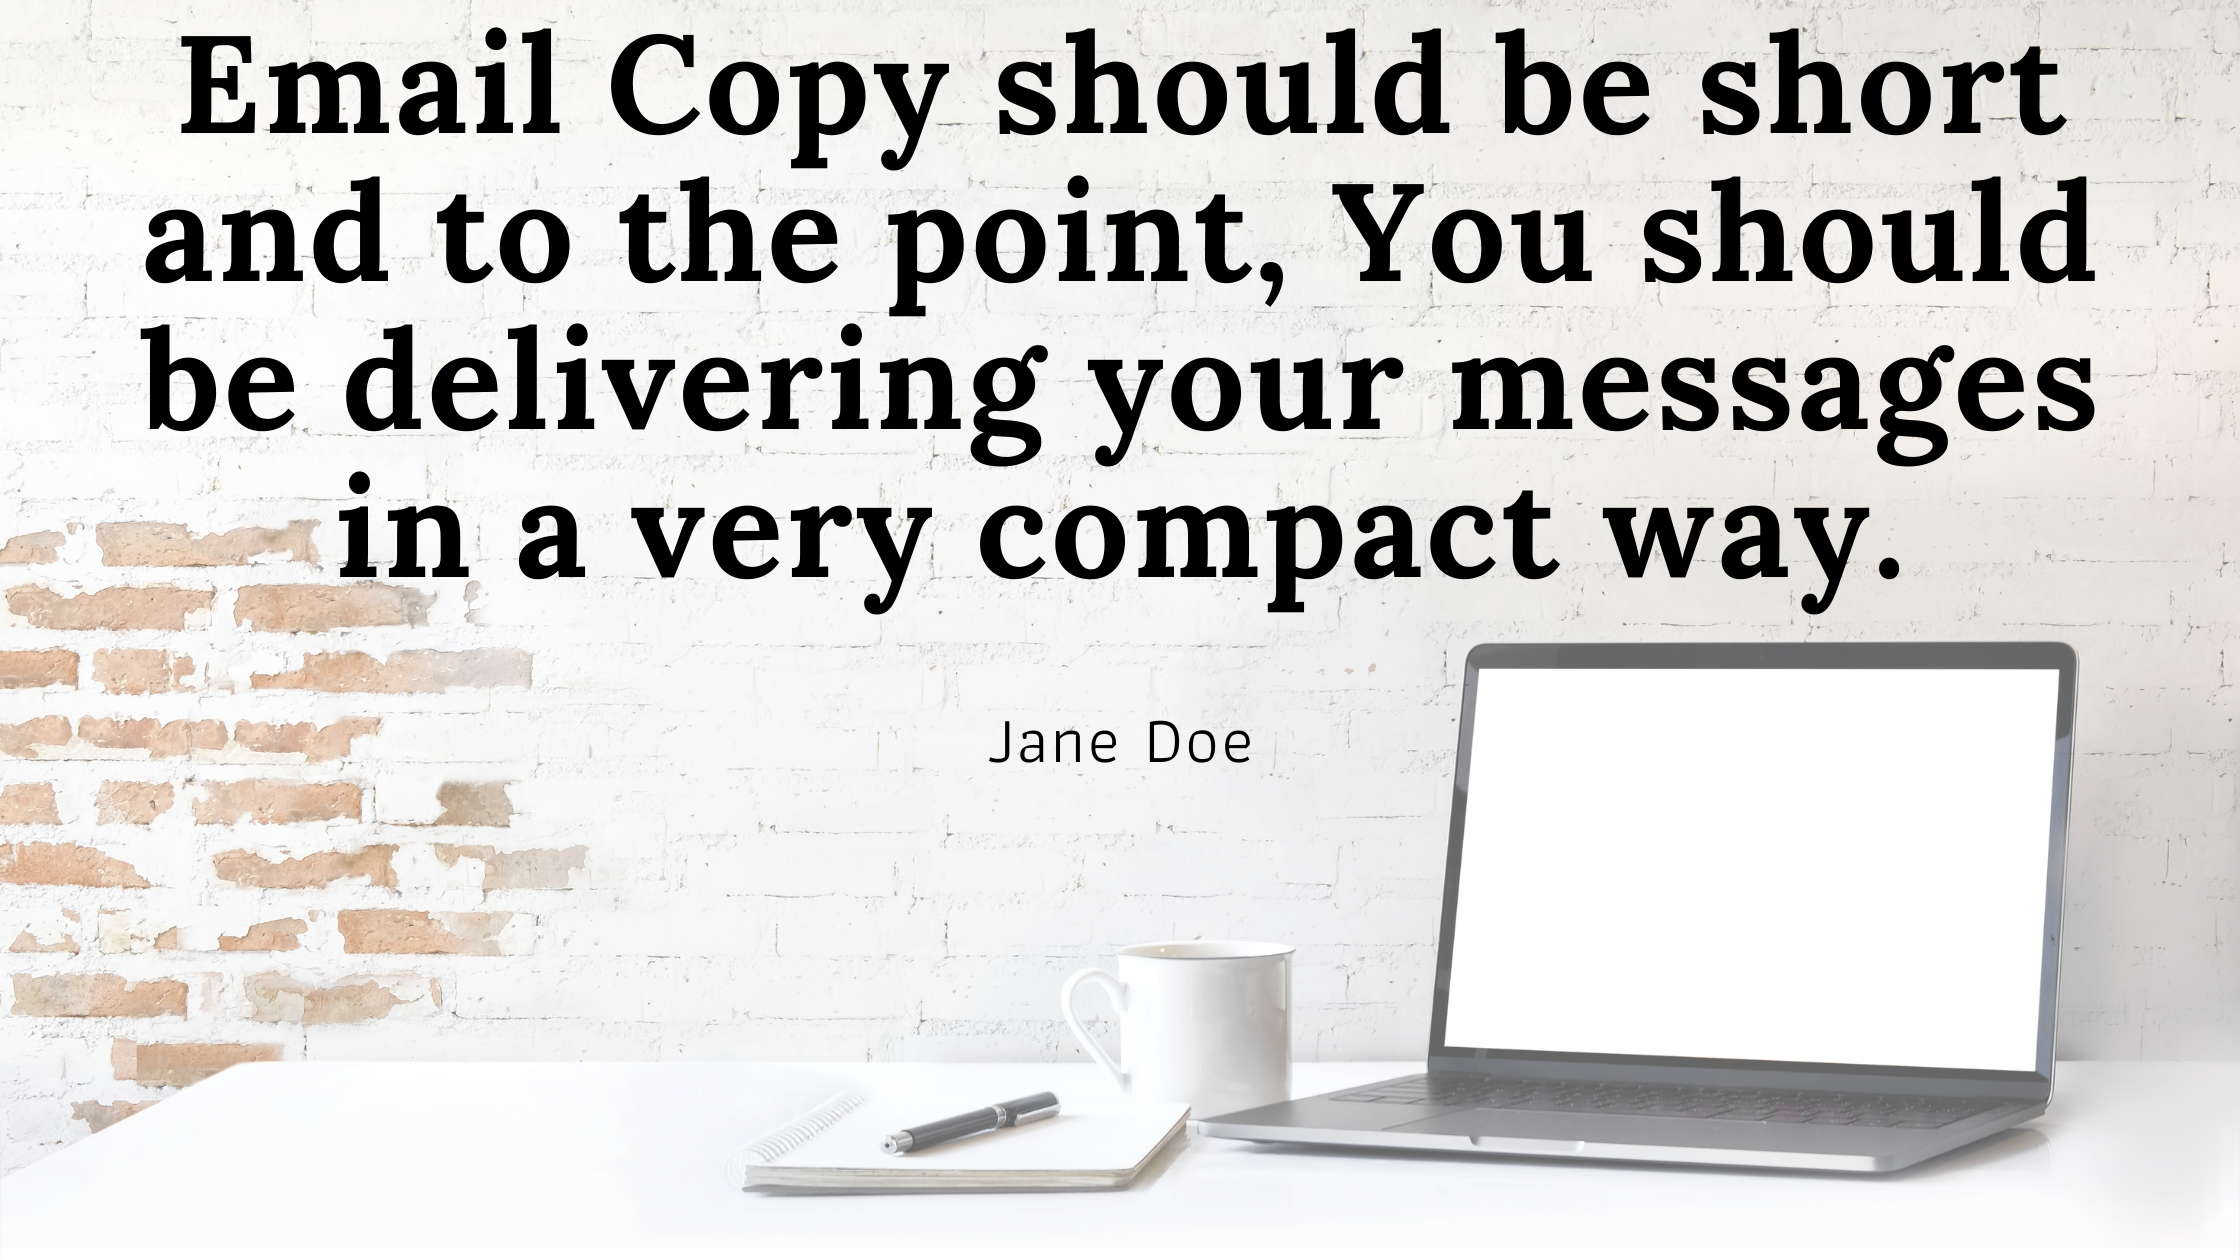 how to write Write Engaging and Compiling e-mail Copy?